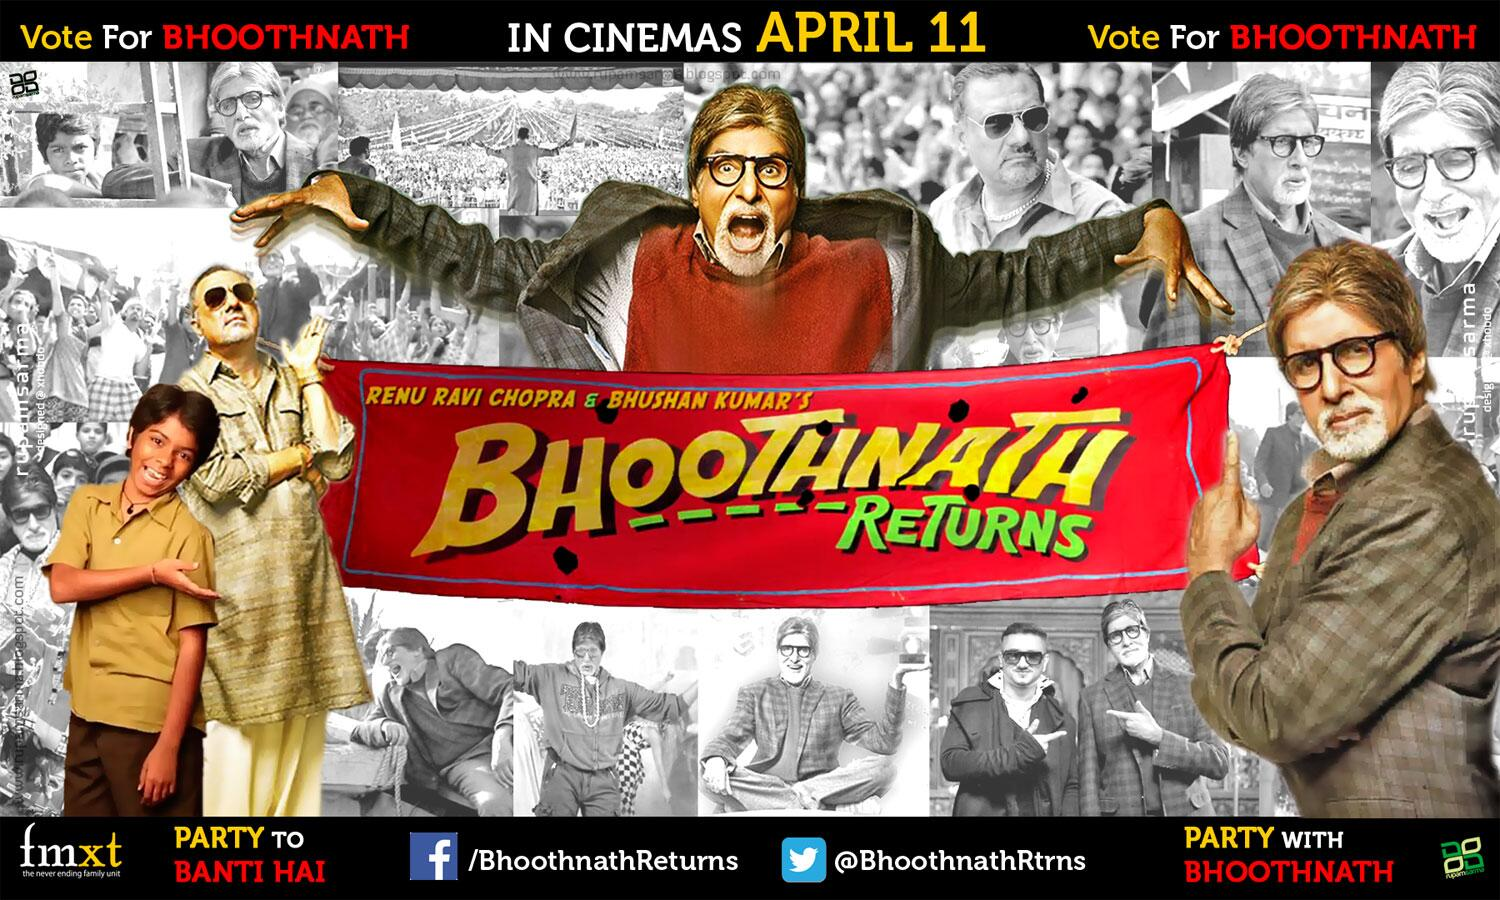 Bhootnath Returns (2014) Hindi Movie *DVDSCR*